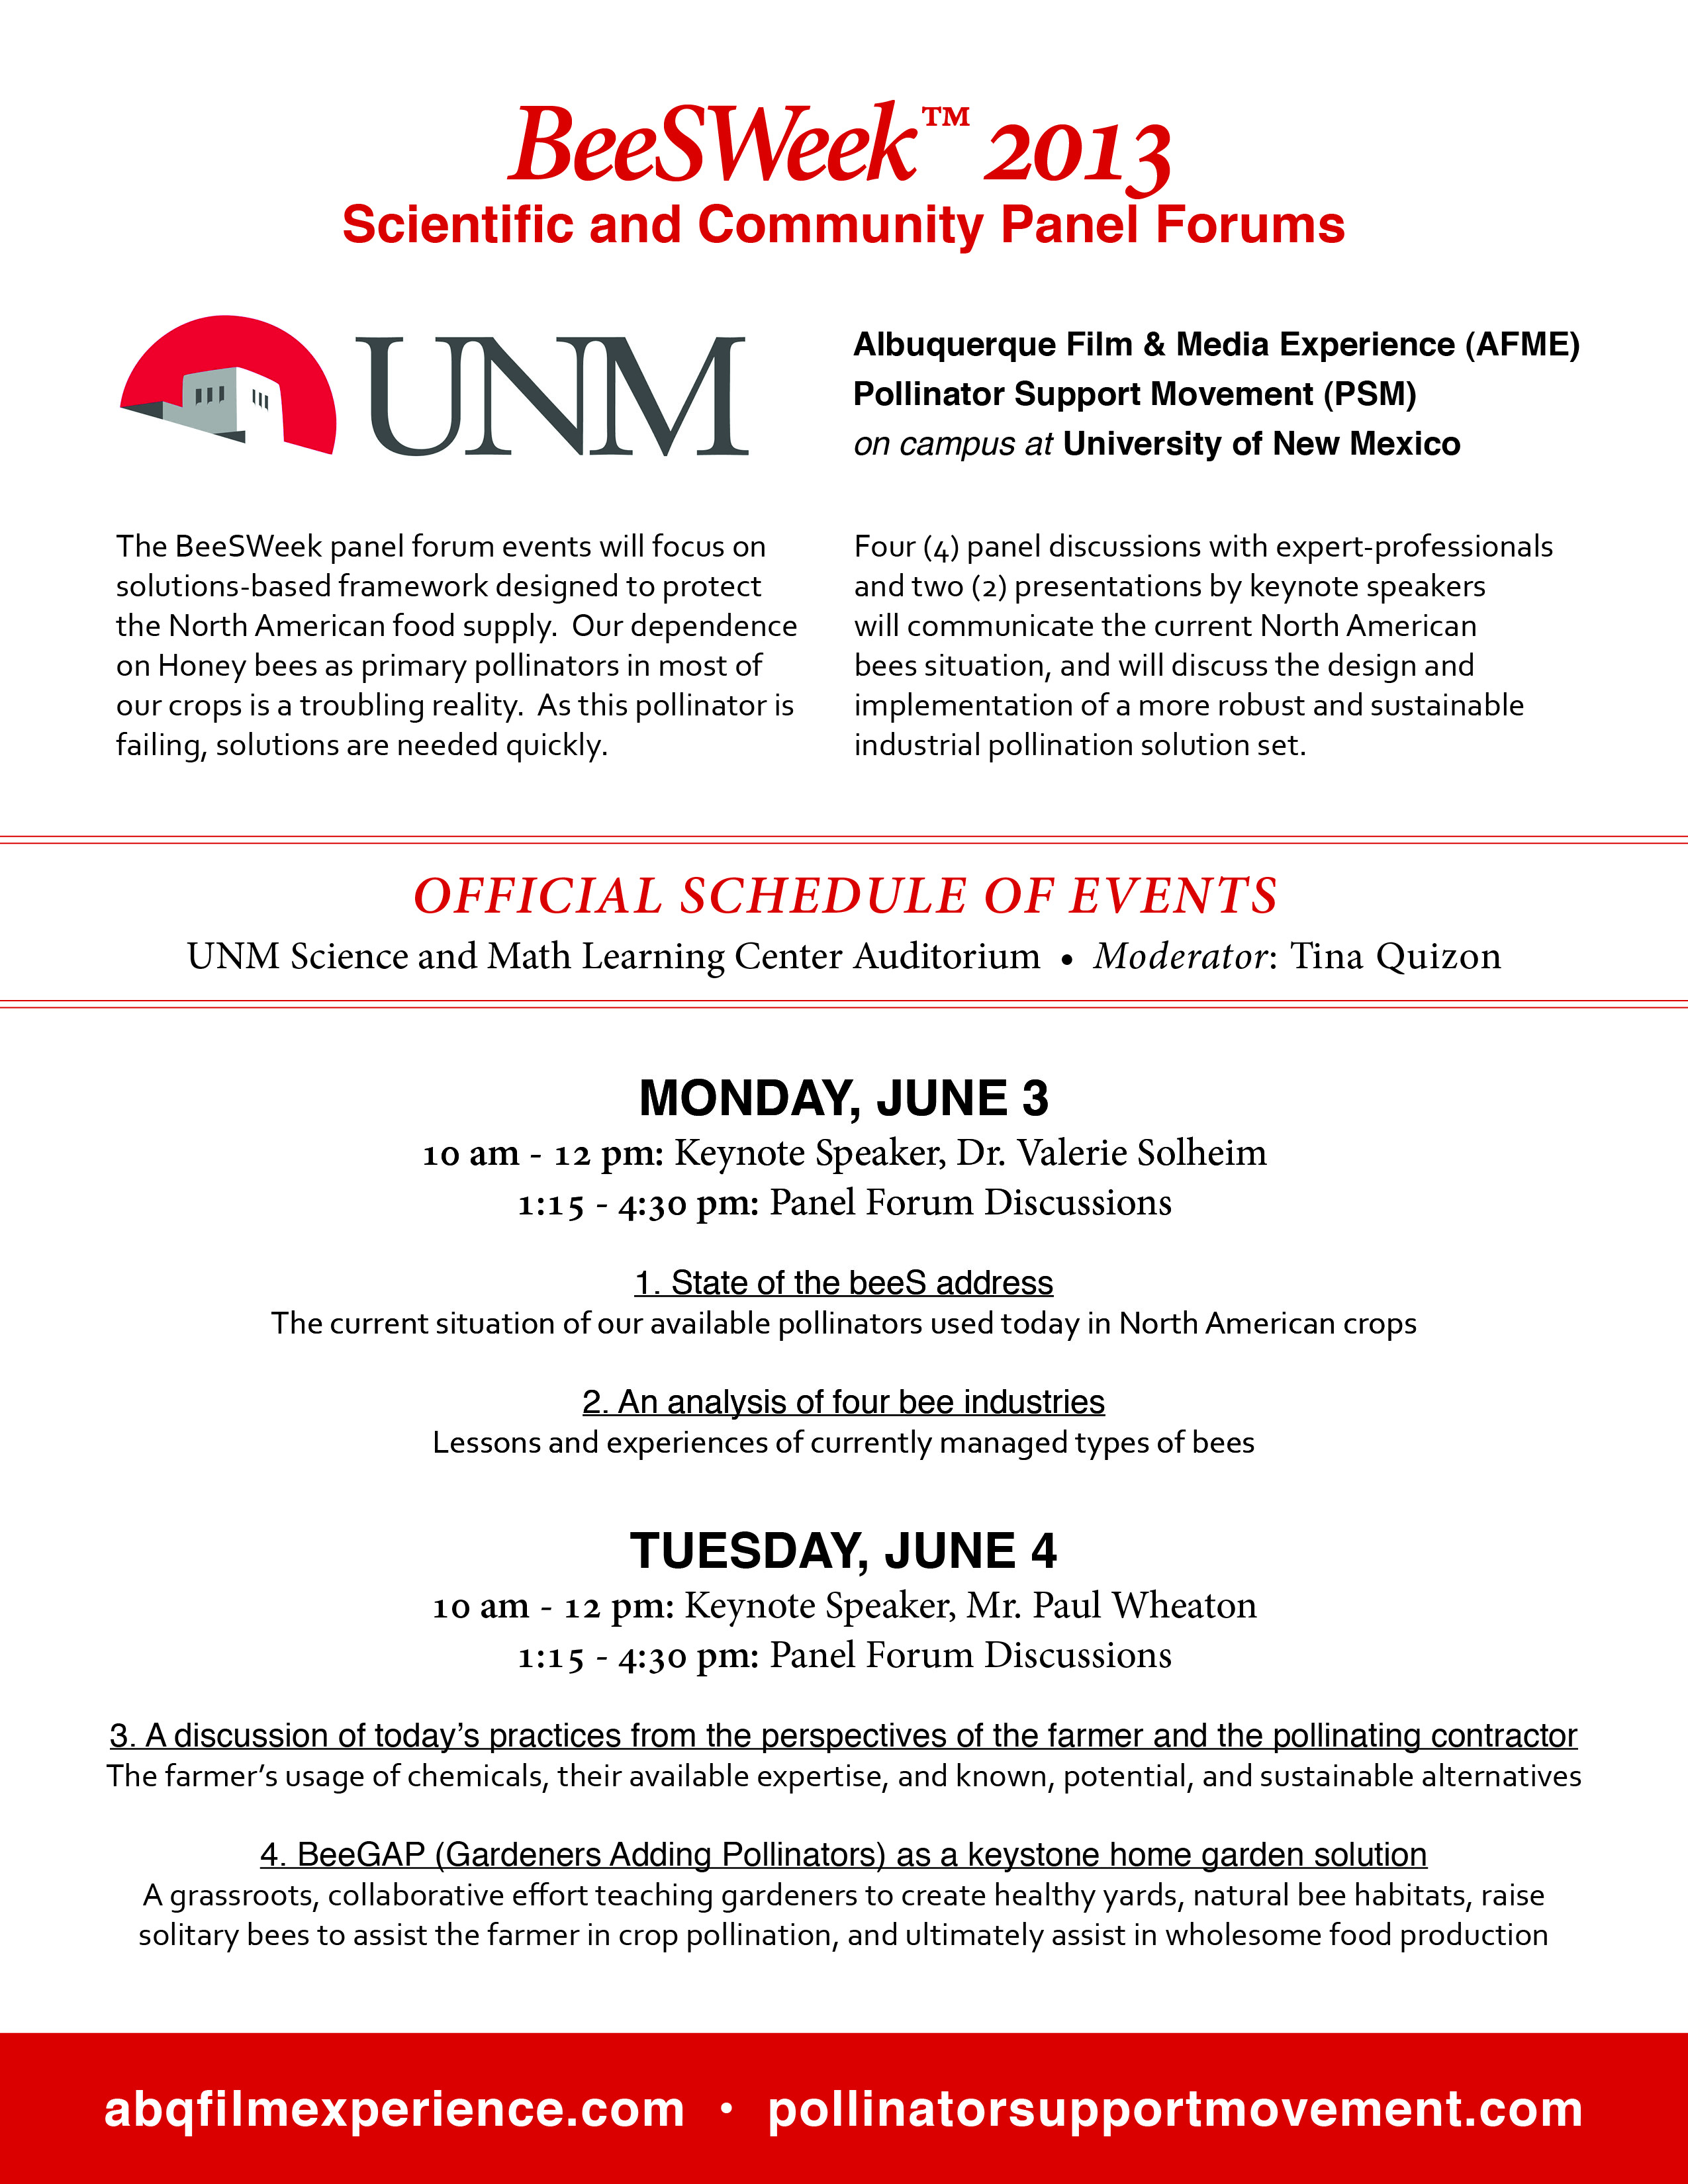 [Thumbnail for BeeSWeek-at-UNM-Official-Schedule-of-Events.jpg]